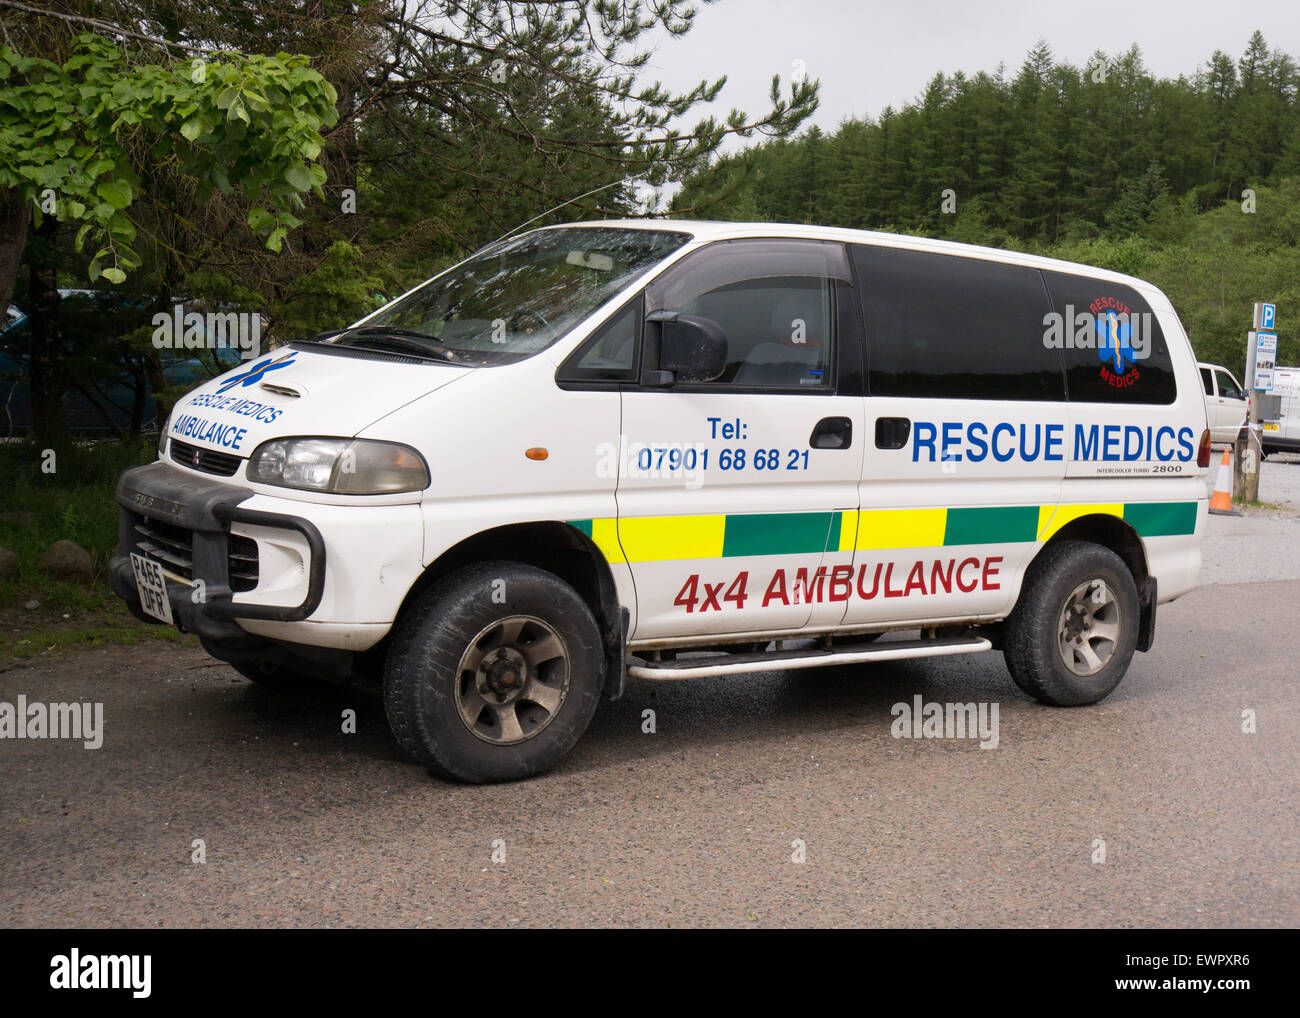 Rescue Medics 4x4 Ambulance and rescue medics at a downhill mountain bike race - Fort William, Scotland, UK - Stock Image